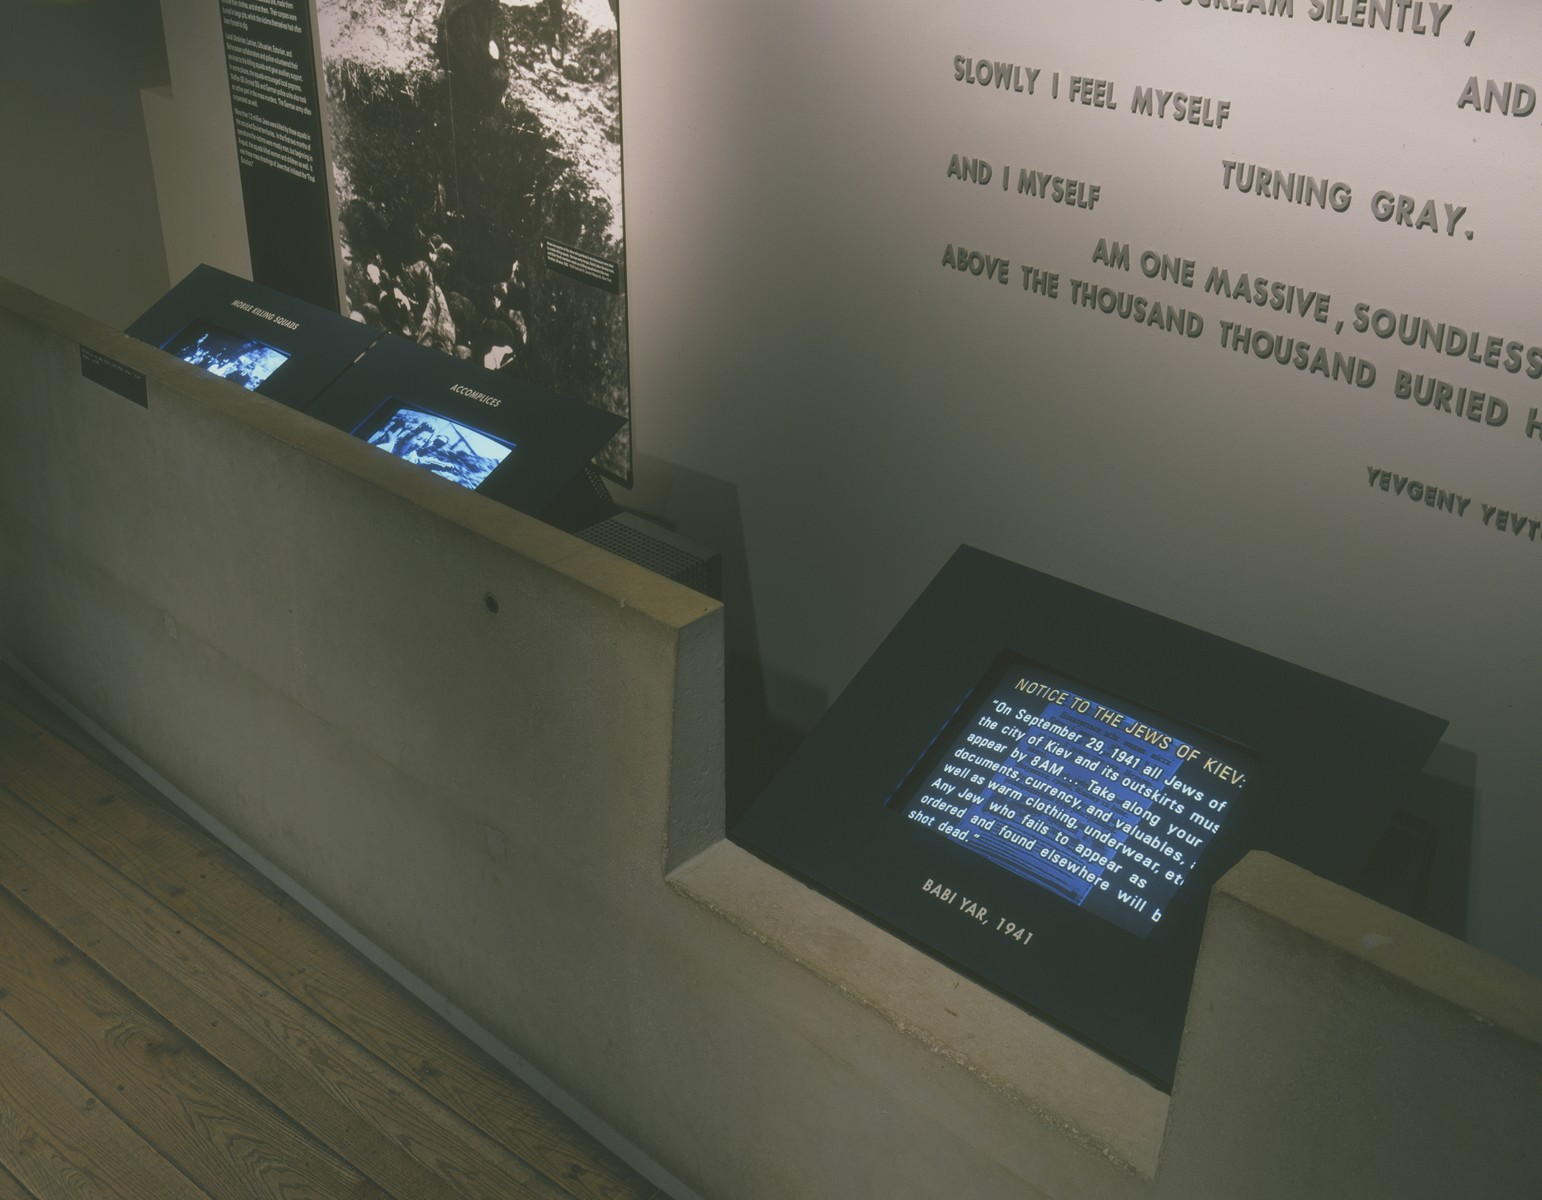 Monitors accompanying the Babi Yar and mobile killing squads segment on the third floor of the permanent exhibition at the U.S. Holocaust Memorial Museum.